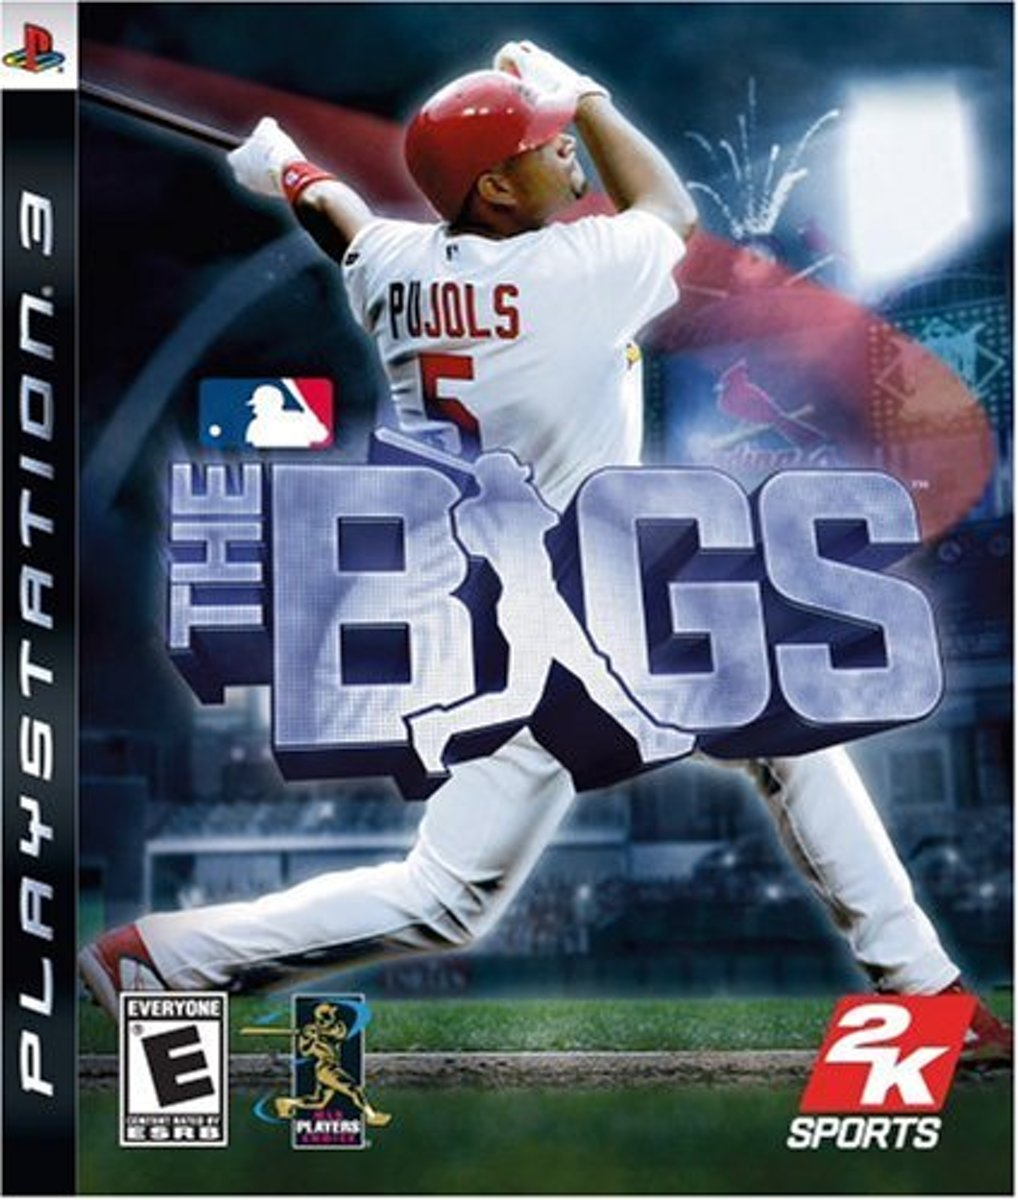 The Bigs Playstation 3